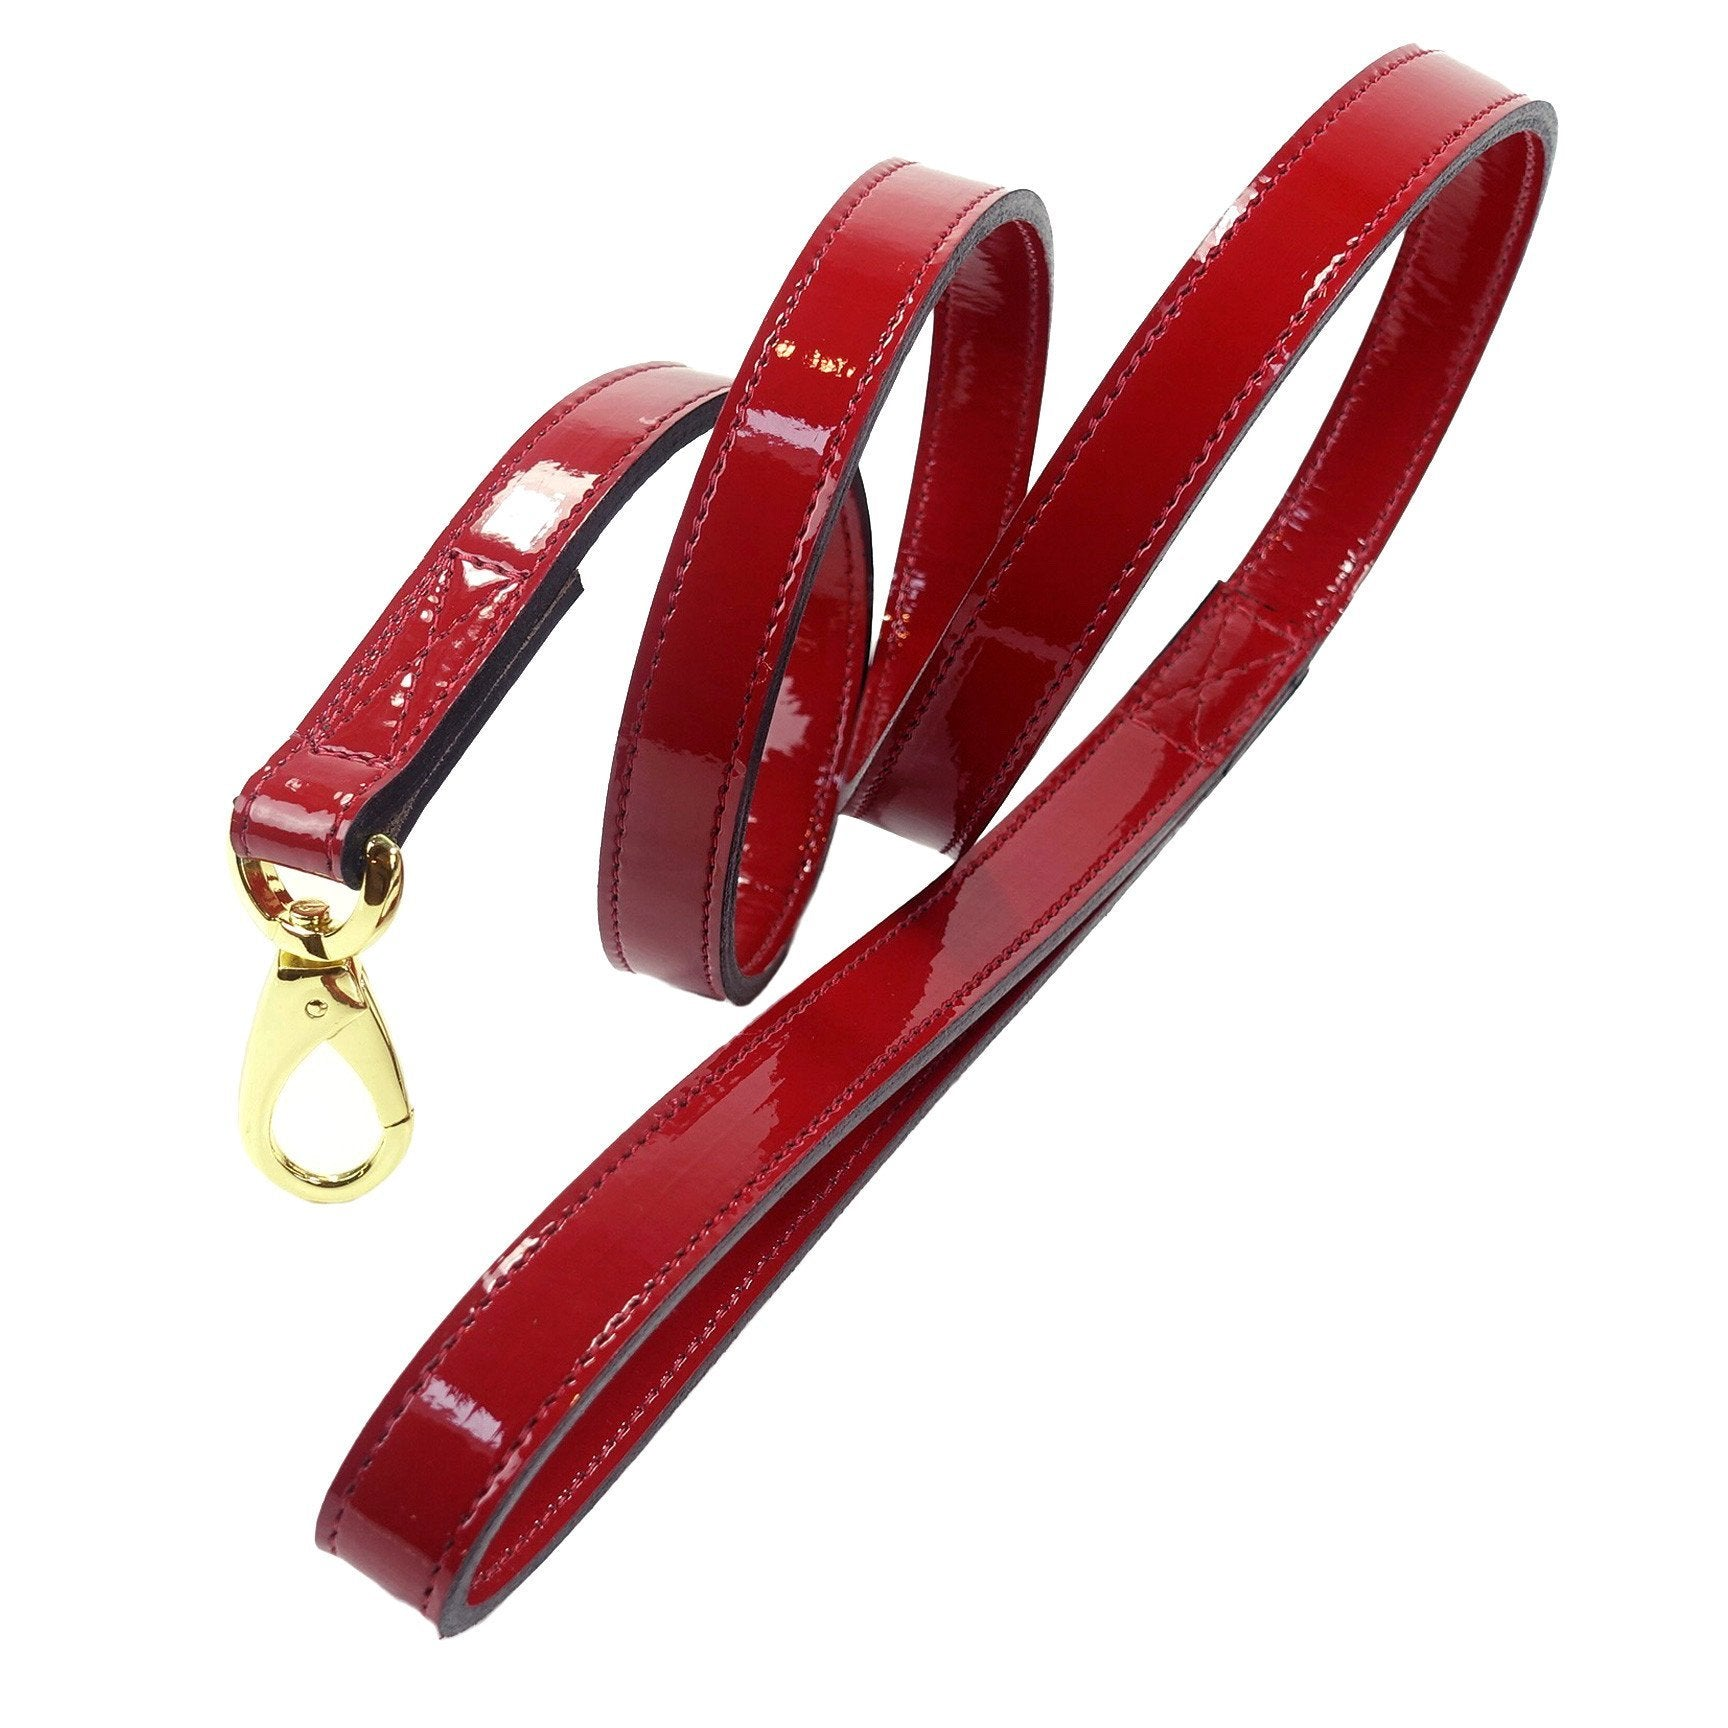 Hartman & Rose Dog Lead in Red Patent Leather with Gold Italian Hardware